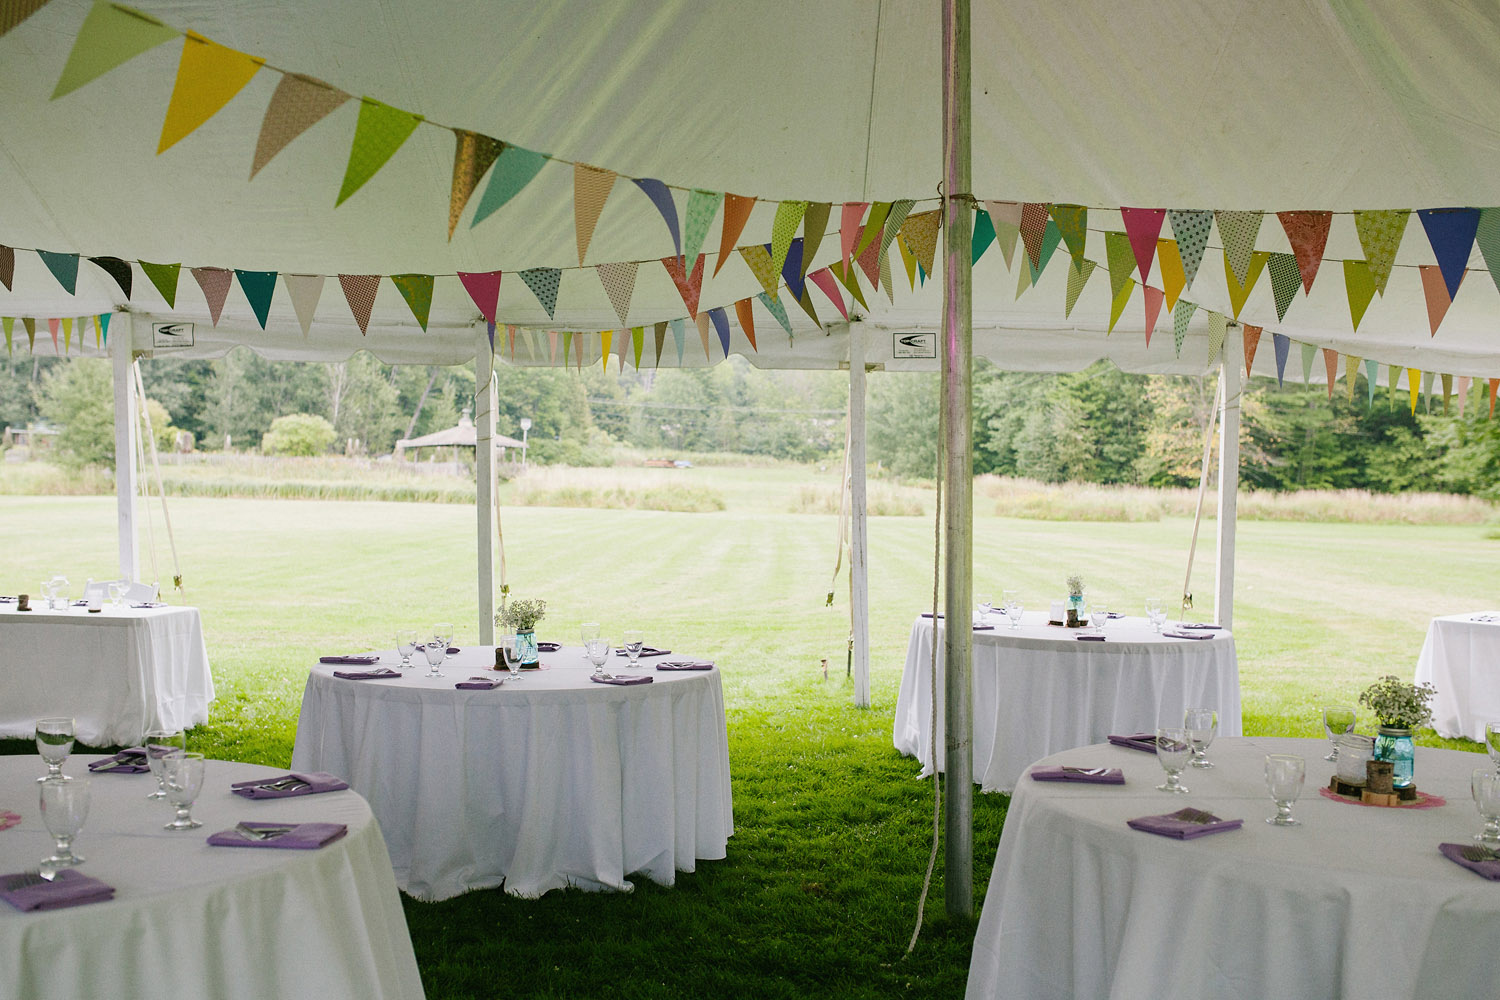 Wedding setup and planning by Laura from Holly Matrimony